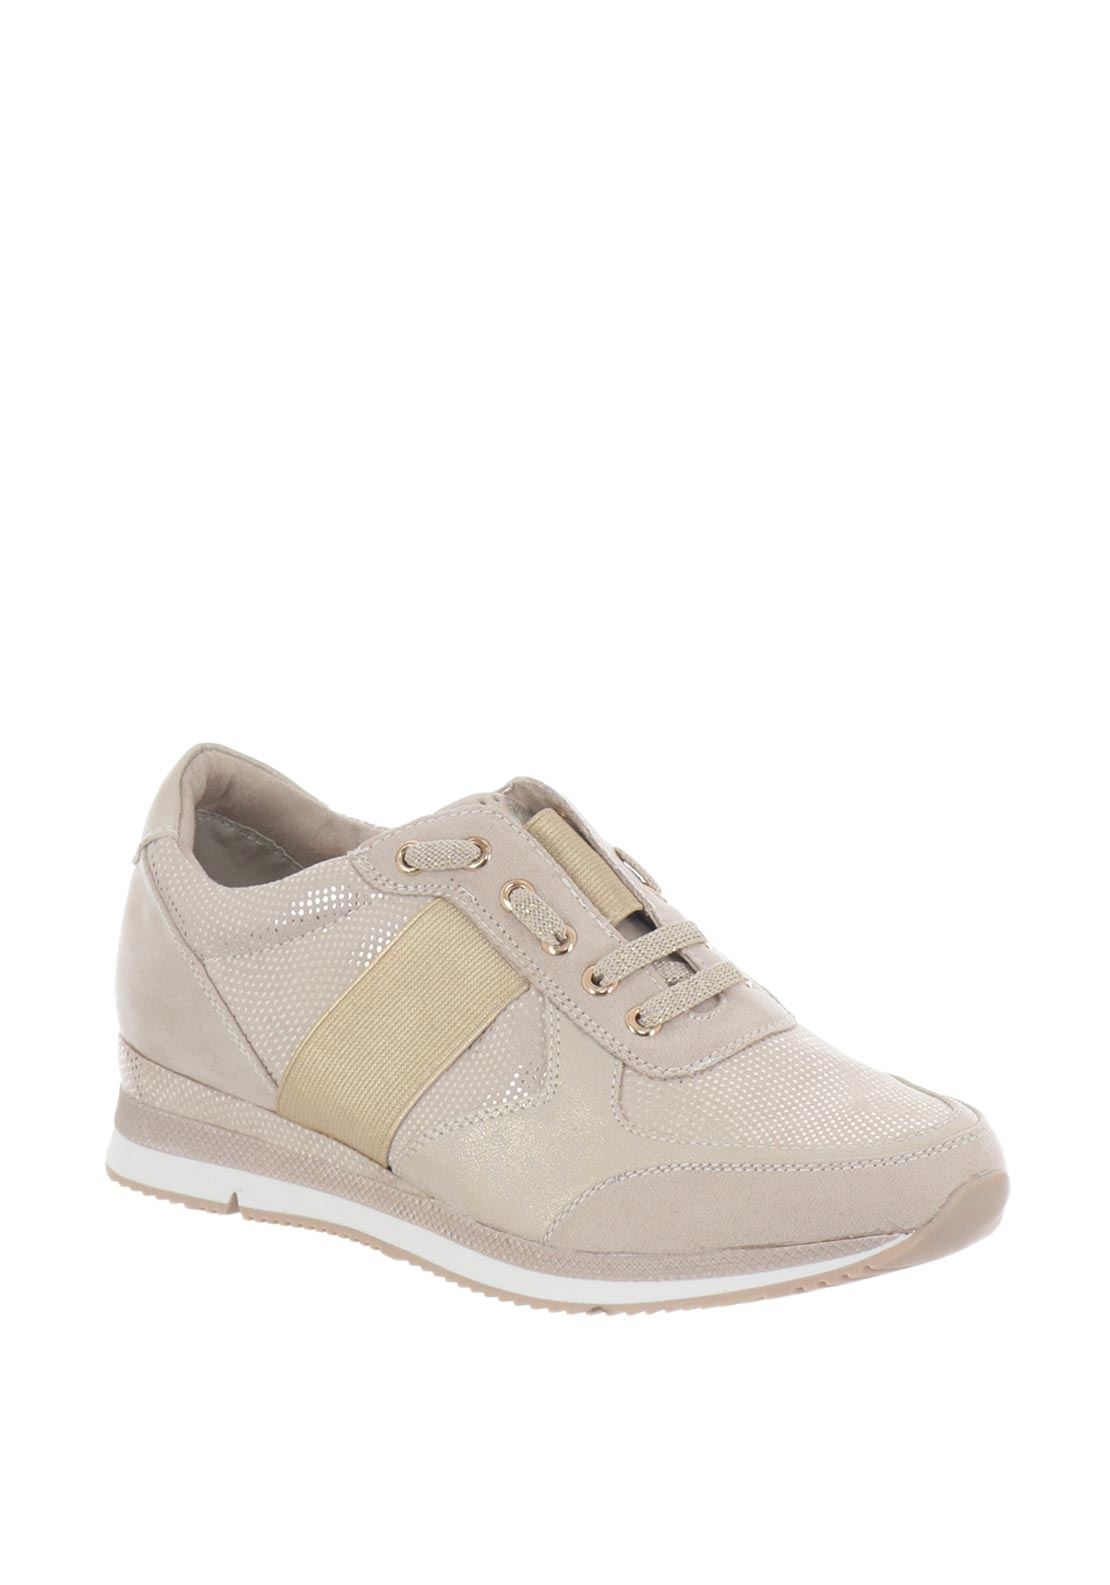 Marco Tozzi Shimmer Wedged Trainers, Nude